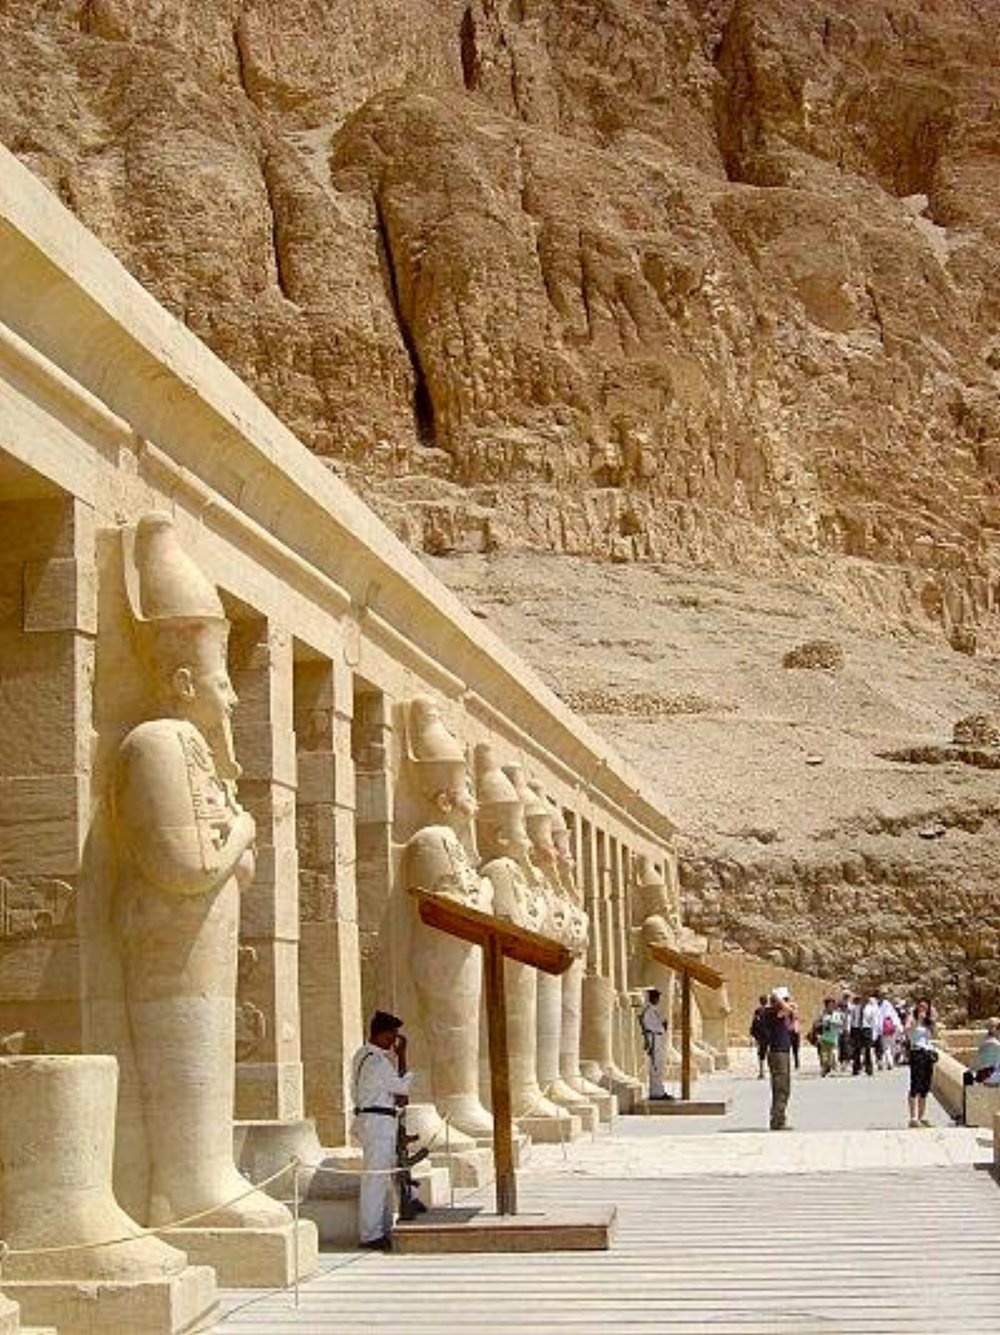 Hatshepsut statues in front of Birth Colonnade